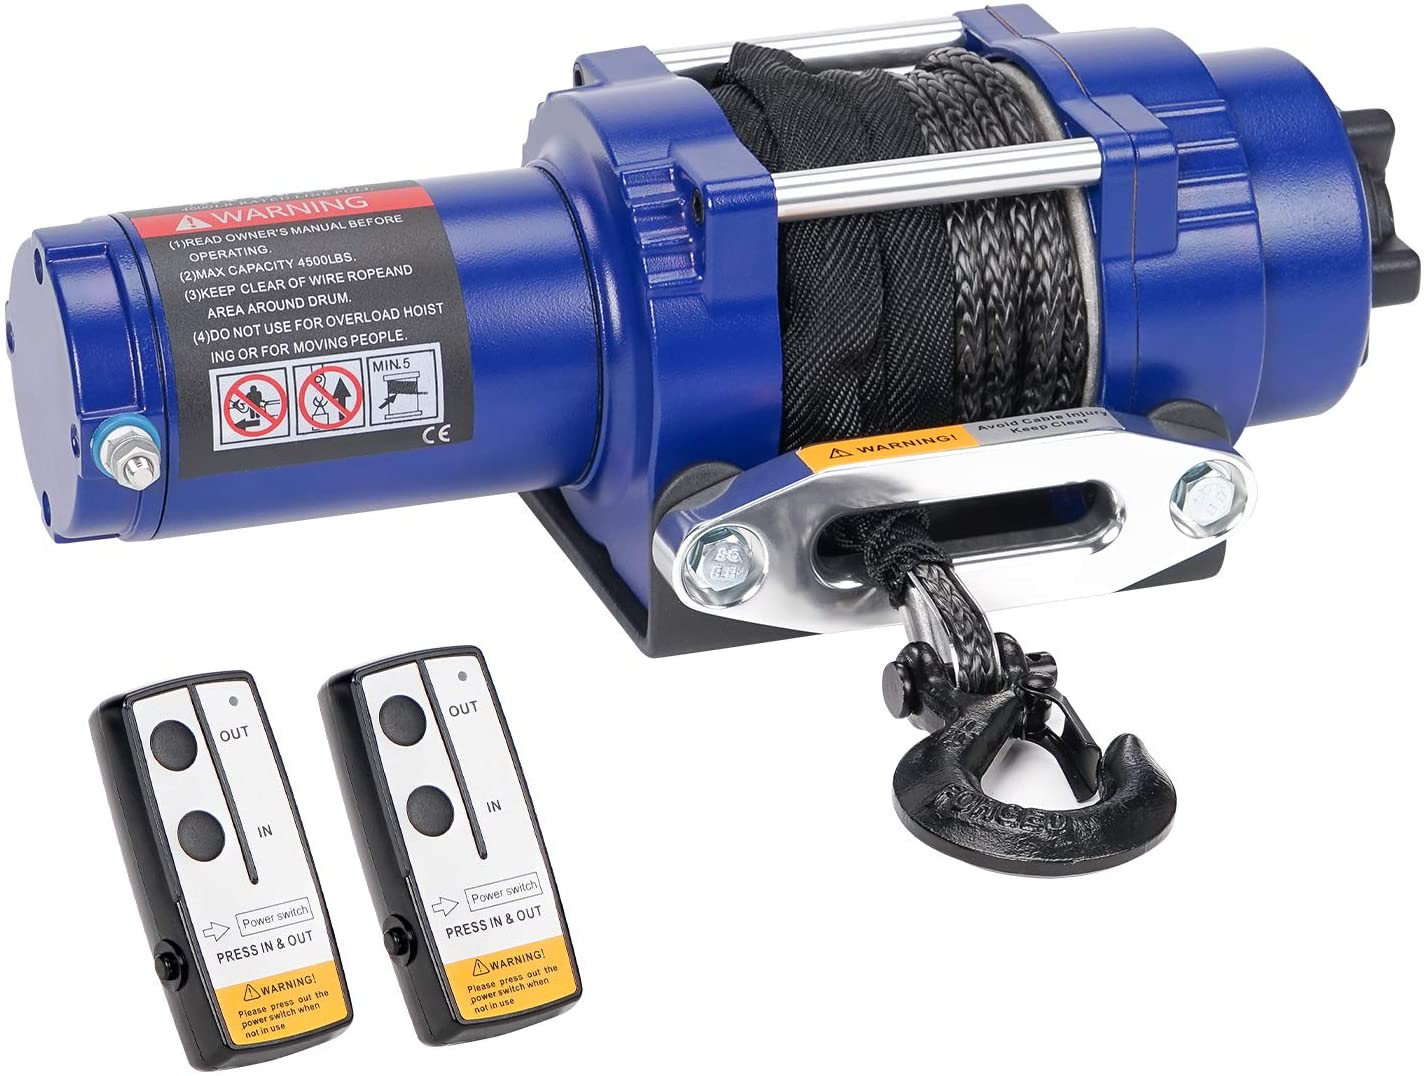 leofit Electric Winch 12V Synthetic Rope IP67 Waterproof 4500 lbs. Capacity Wireless Remote Control